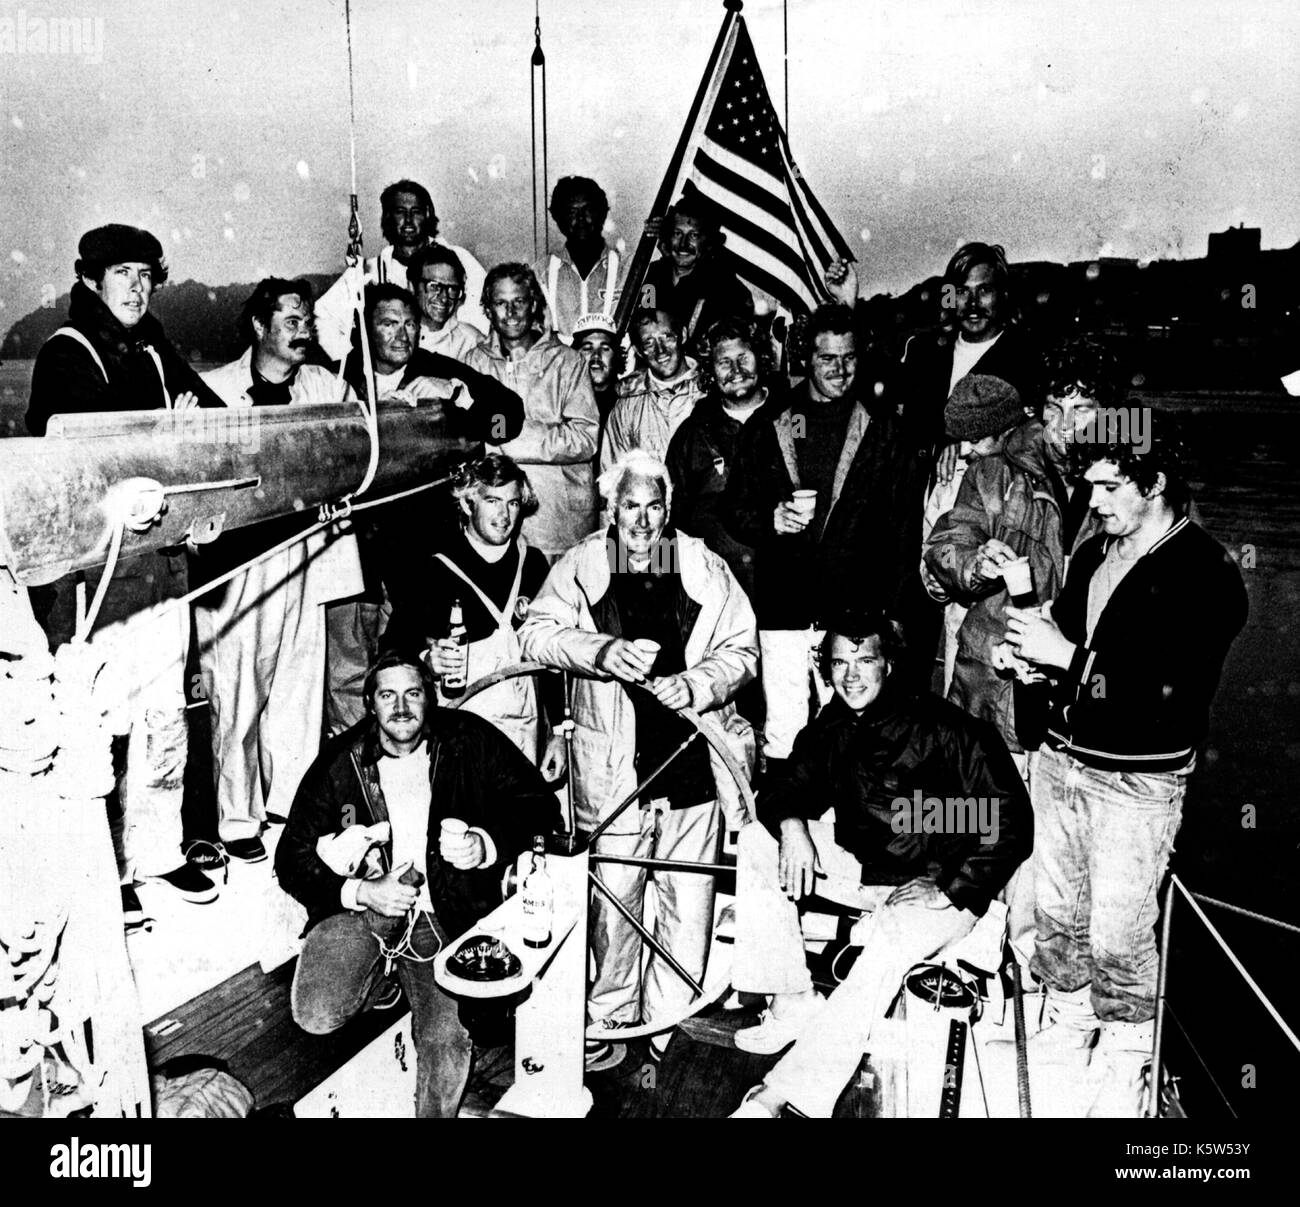 AJAXNETPHOTO. 13TH AUGUST, 1975. PLYMOUTH, ENGLAND. - FASTNET RACE - SKIPPER AND OWNER JIM KILROY OF LOS ANGELES (CENTRE, BEHIND WHEEL) AND THE 20 MAN CREW OF THE AMERICAN YACHT KIALOA ON ARRIVAL AFTER IT TOOK LINE HONOURS AT THE END OF THE 605 MILE RACE. 